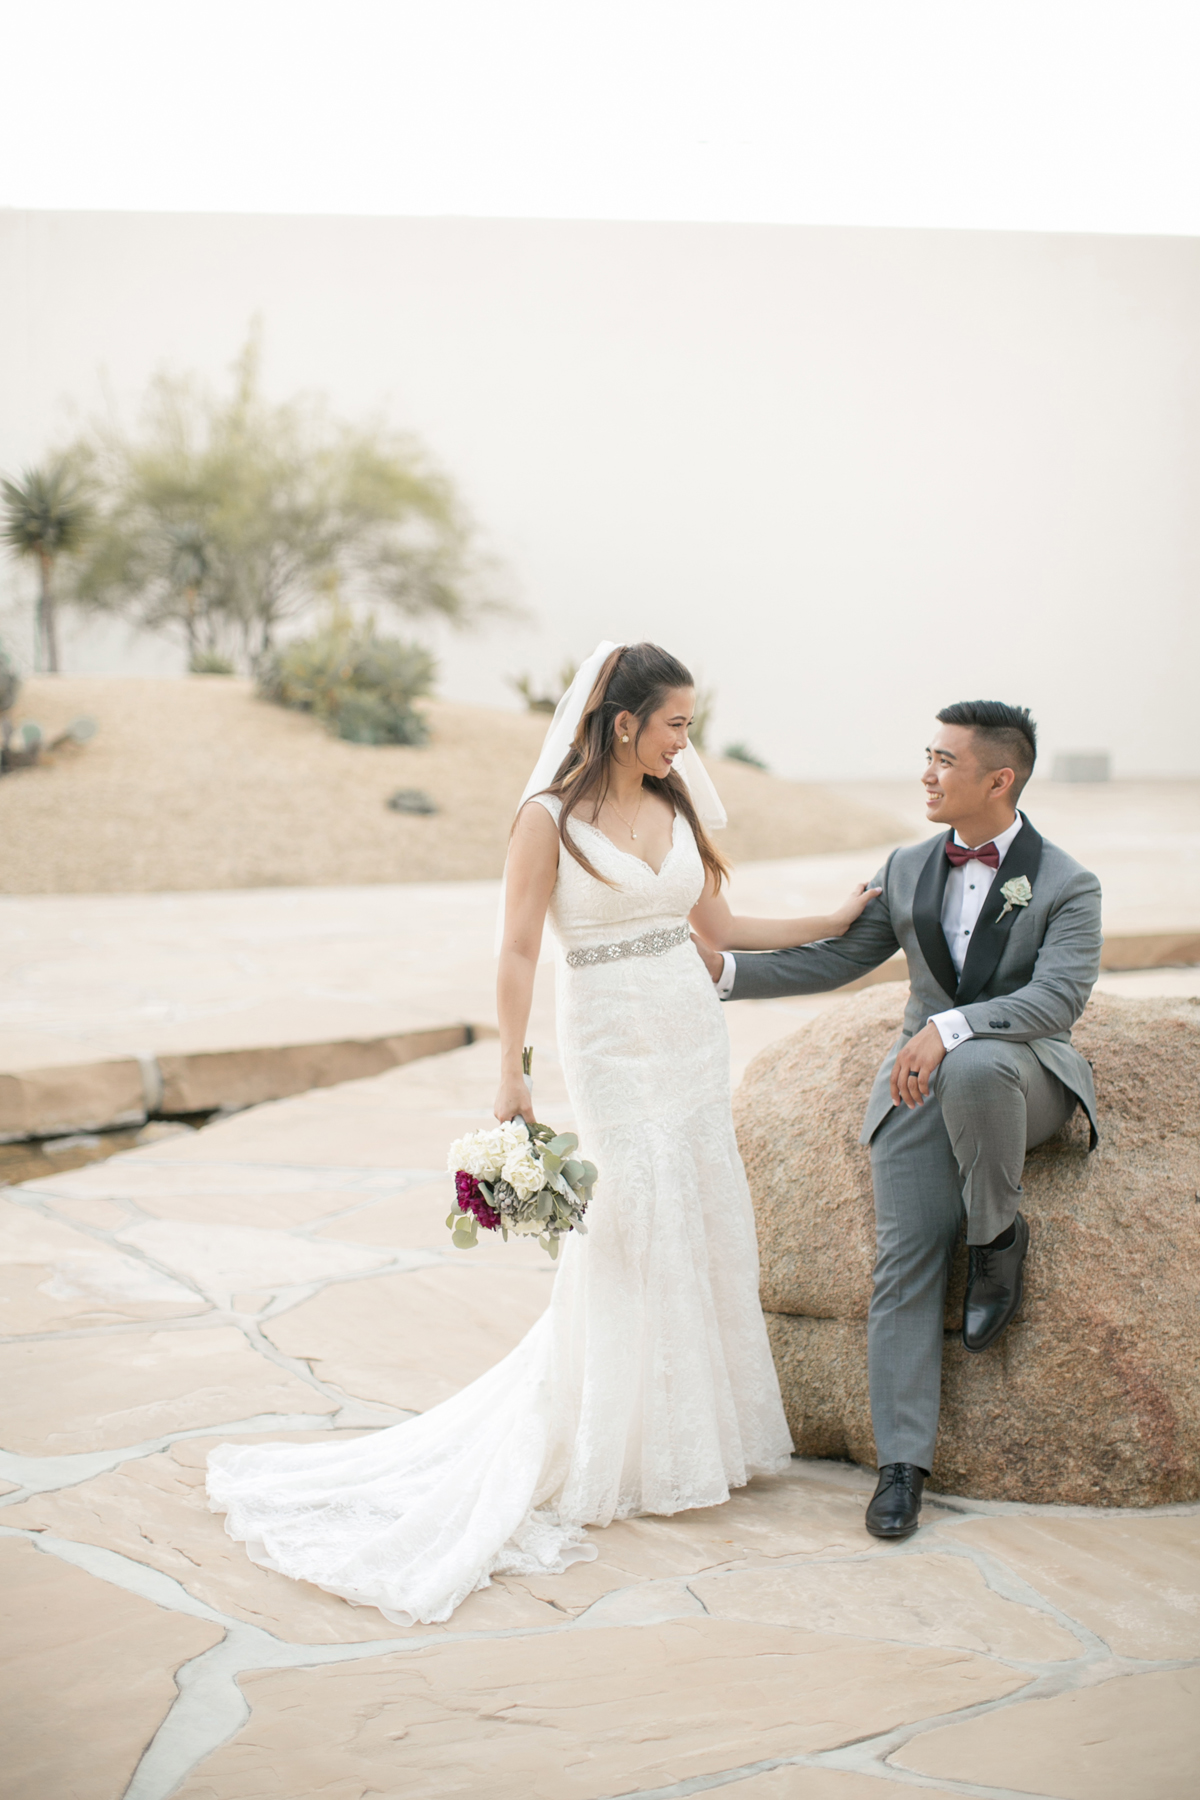 wedding-tips-from-a-wedding-photographer-cherish-the-moment